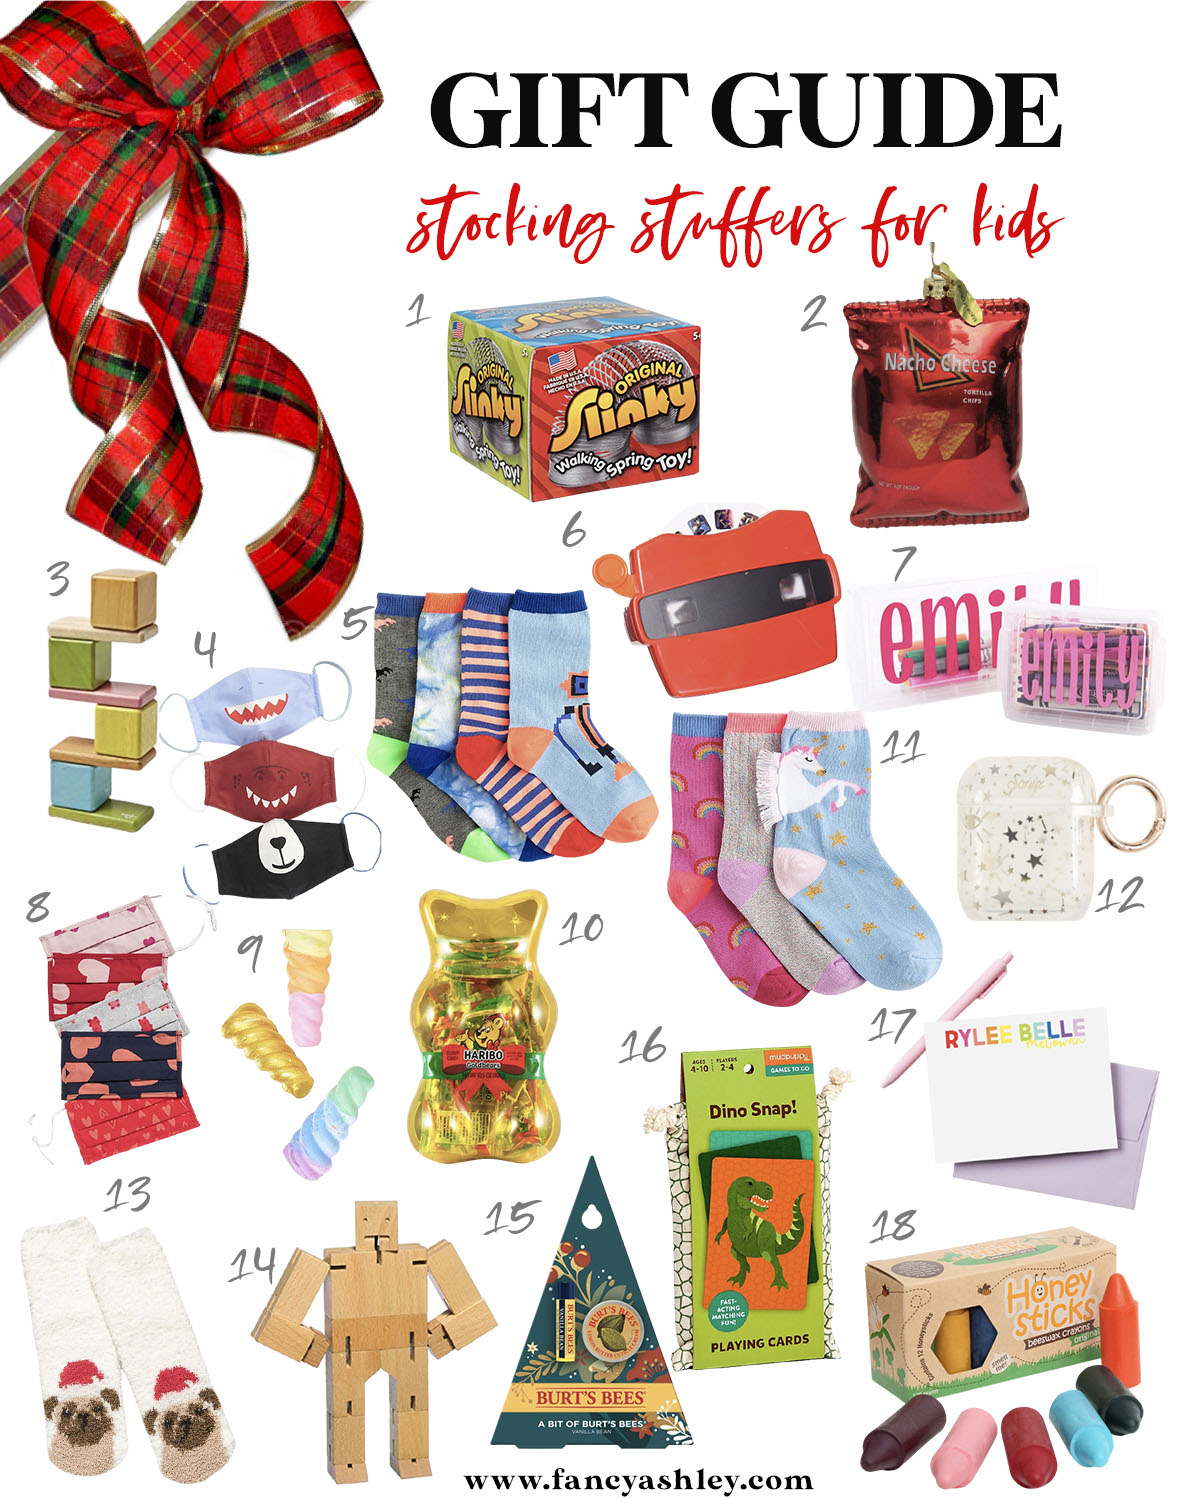 Kids Stocking Stuffers by popular Houston life and style blog, Fancy Ashley: collage image of animal mouth face masks, slinky, view finder, Doritos chips, unicorn sock set, air pods case, jumbo crayons, puppy socks, Dino Snap card game, personalized stationary, personalized penicil case, cuebot micro, animal print face masks, and Burts bees lip set.